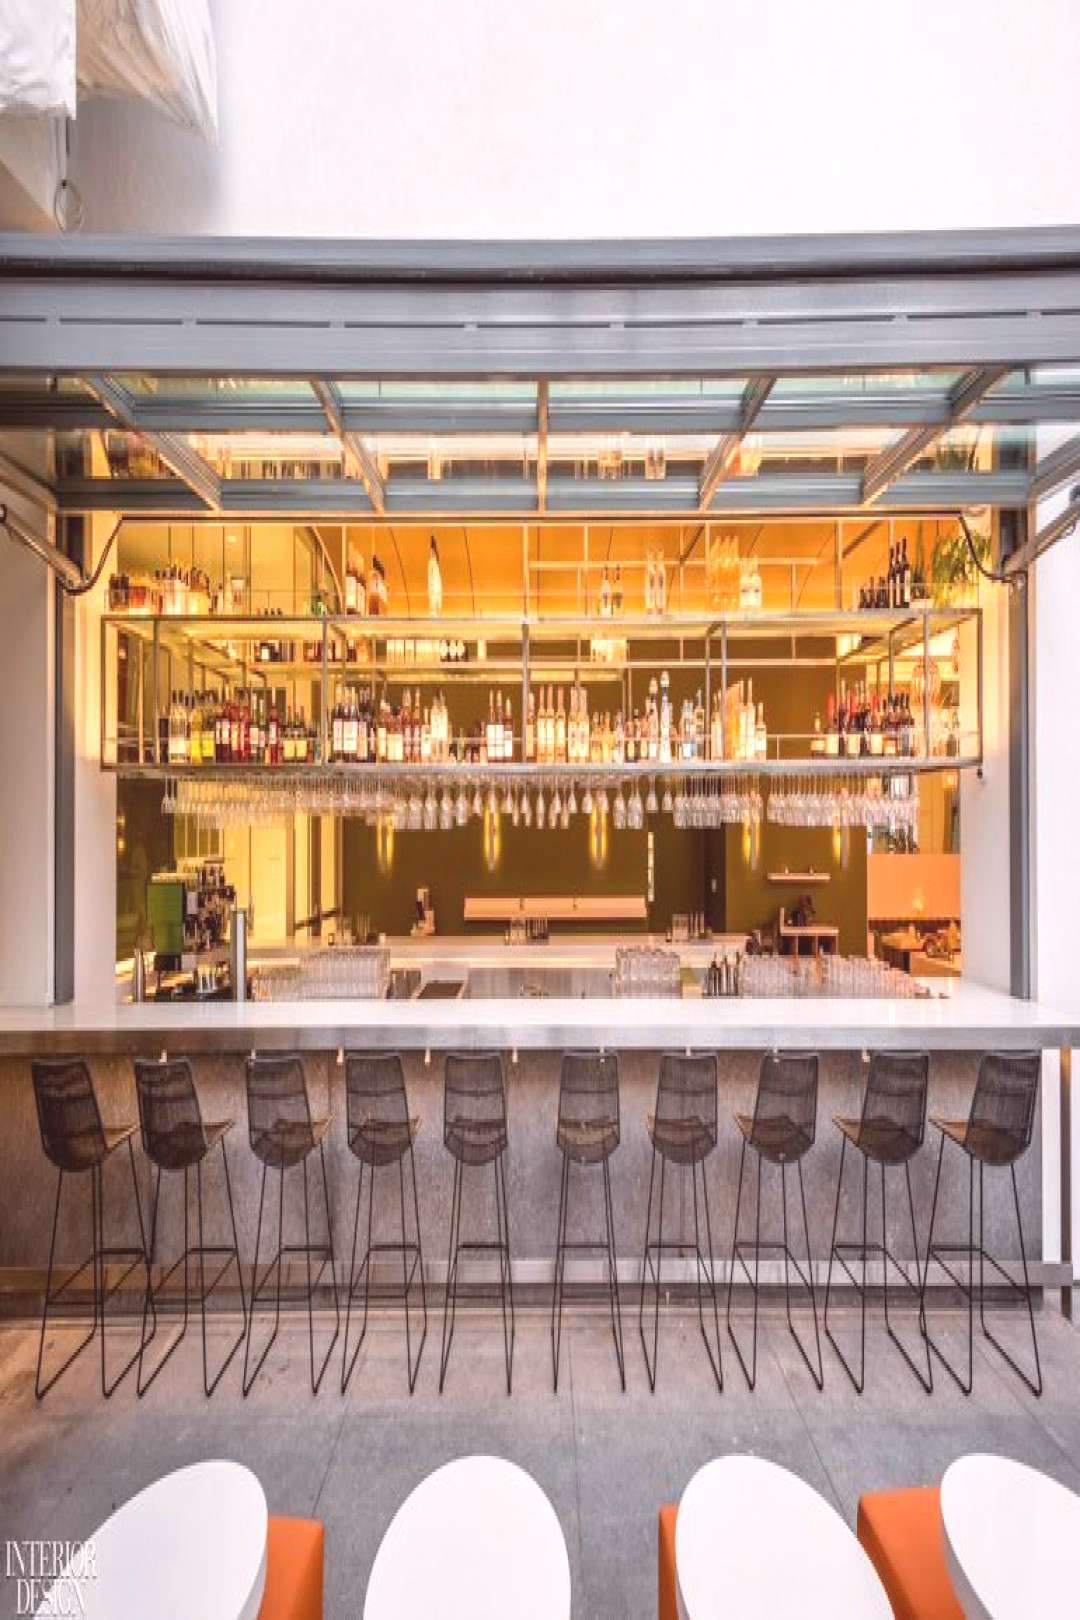 Michael Maltzan, Fettle Design, and Jorge Pardo Create Art at Audrey at the Hammer   - Restaurants